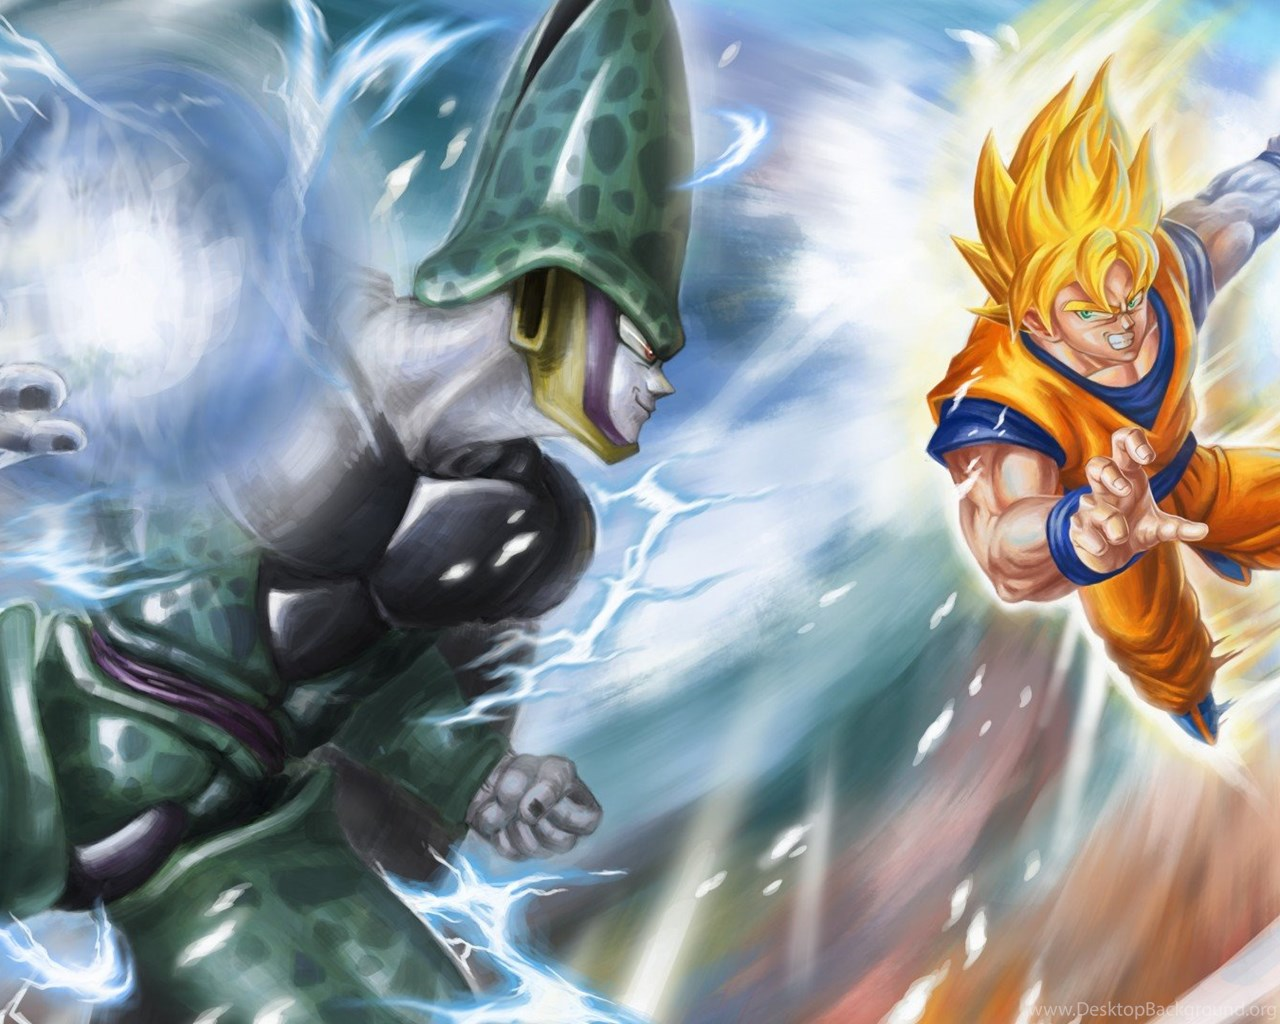 HD Goku Vs Cell Dragon Ball Z HD 1080p Wallpapers Full